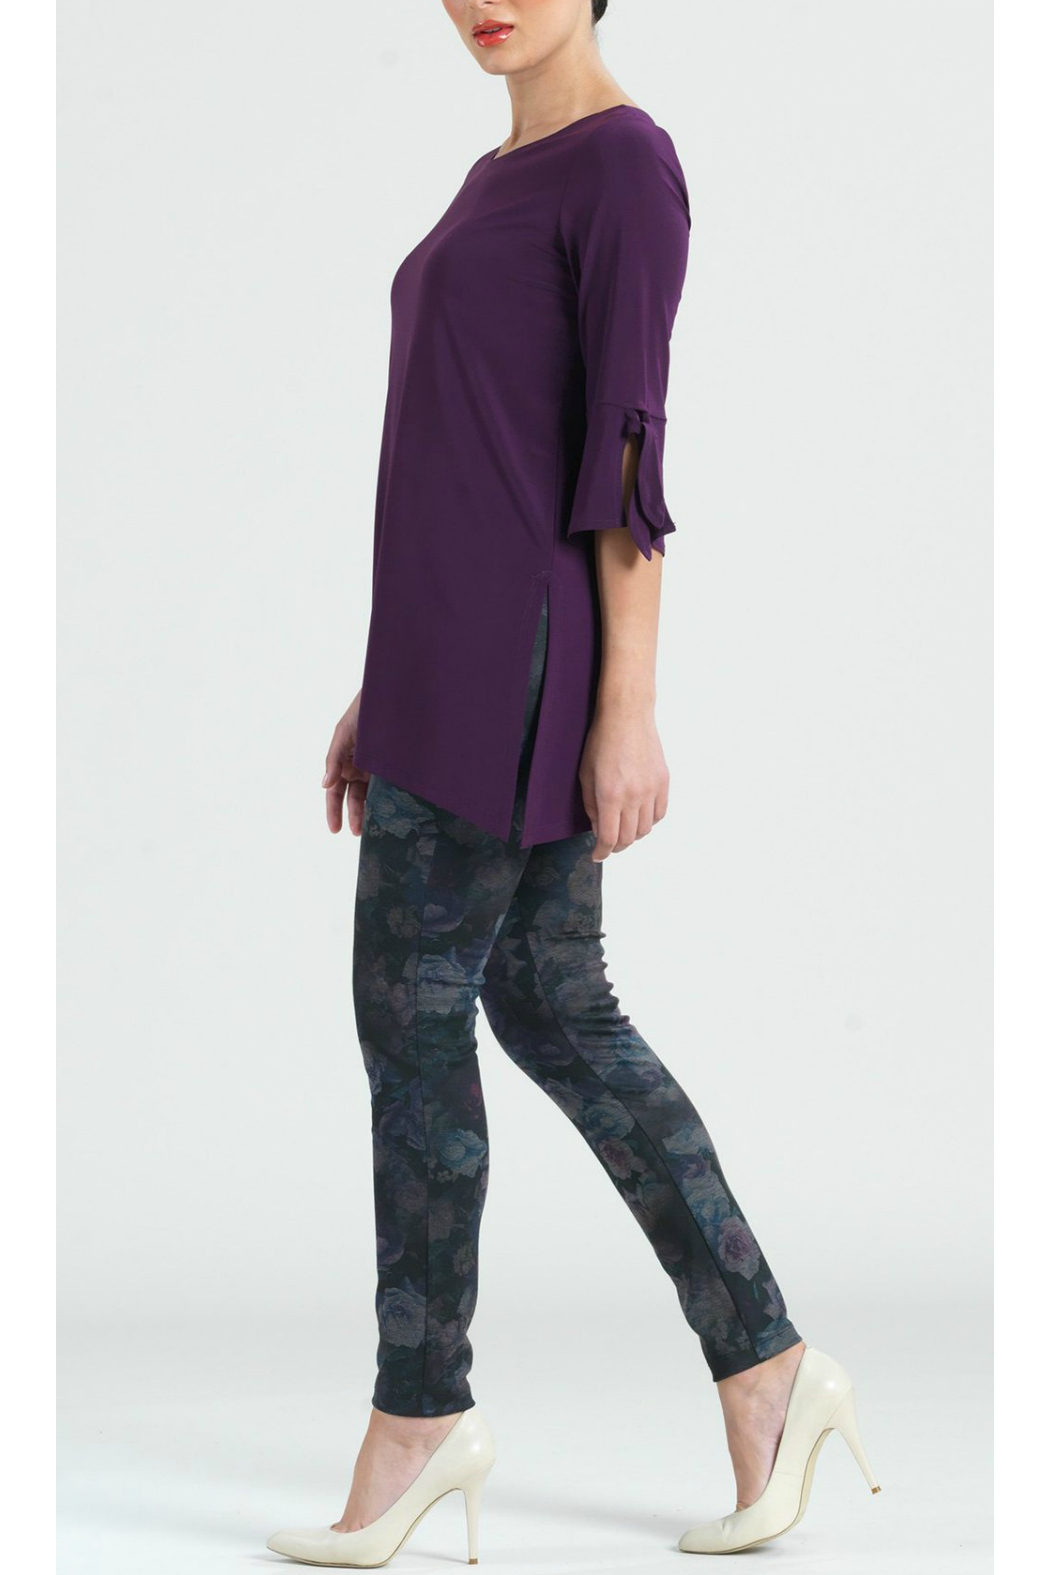 Clara Sunwoo Solid soft knit tunic - Front Full Image